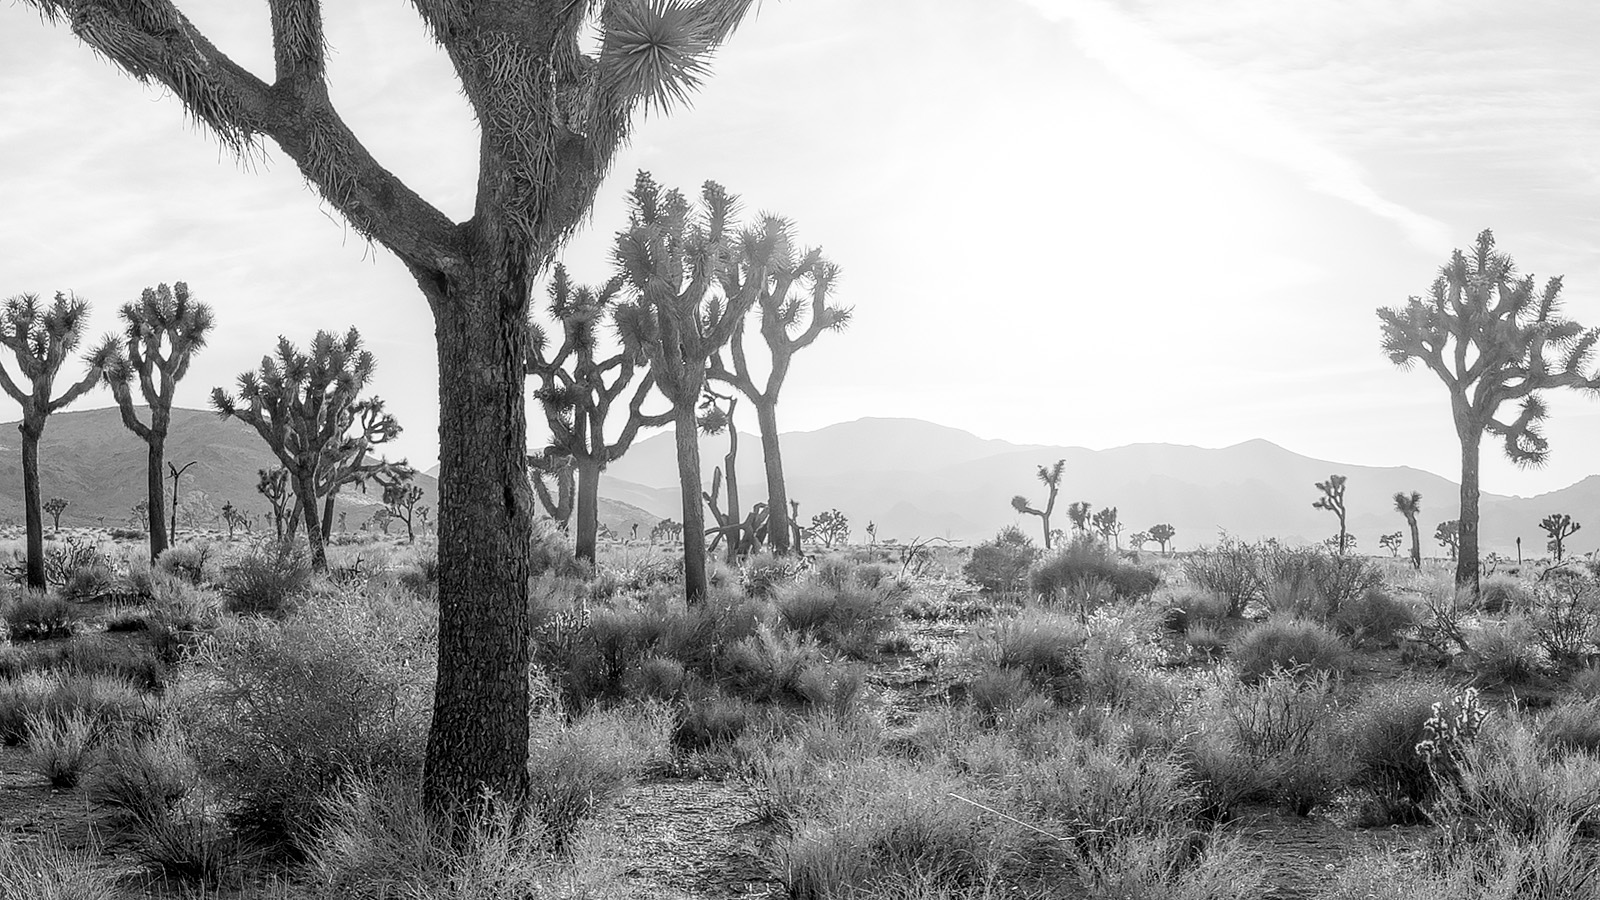 Joshua Tree California - Black and White Fine Art Landscape Photography.